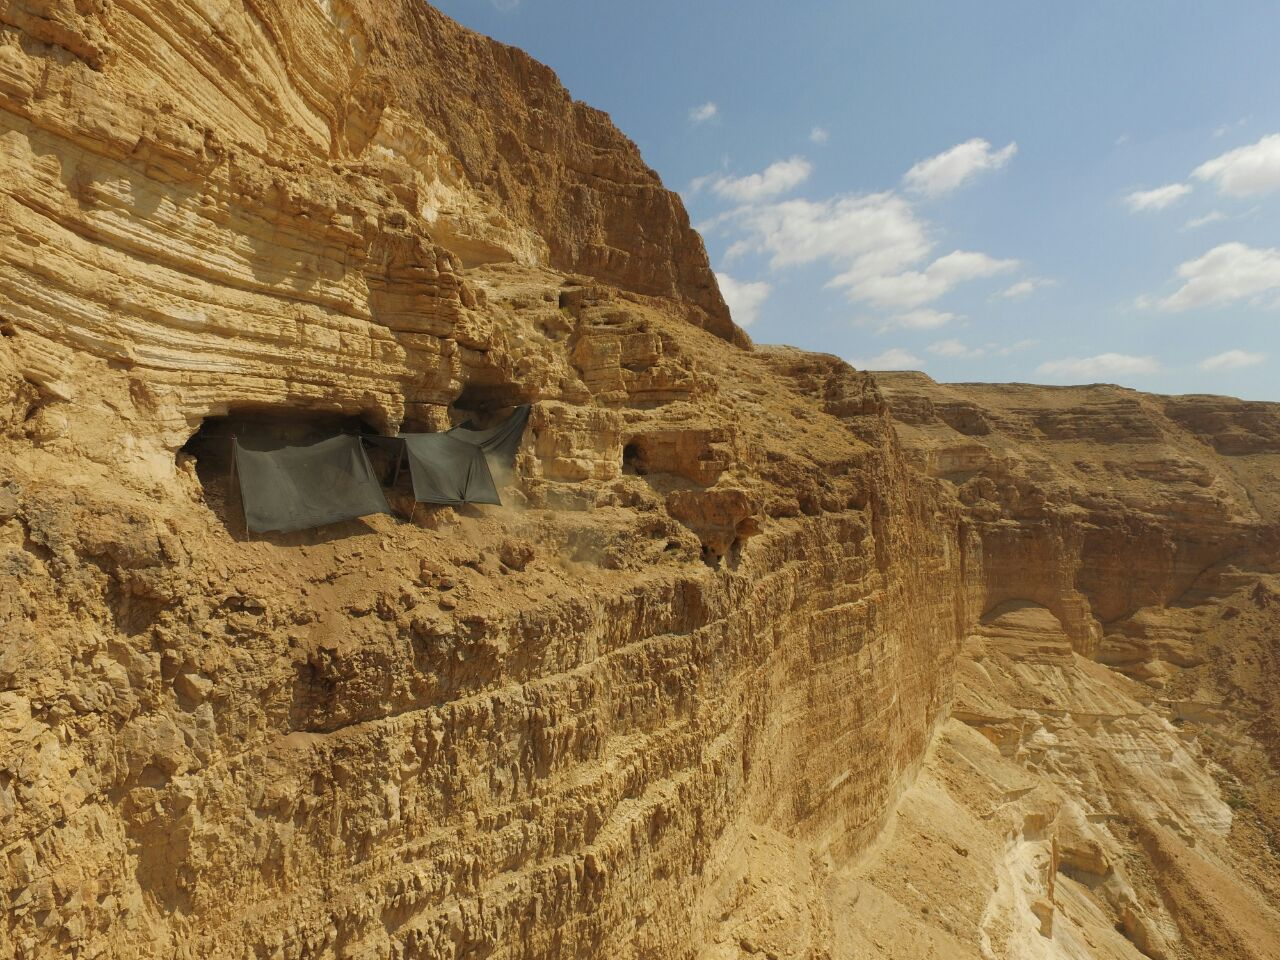 Qumran cave excavation (Photo: Guy Fitoussi)